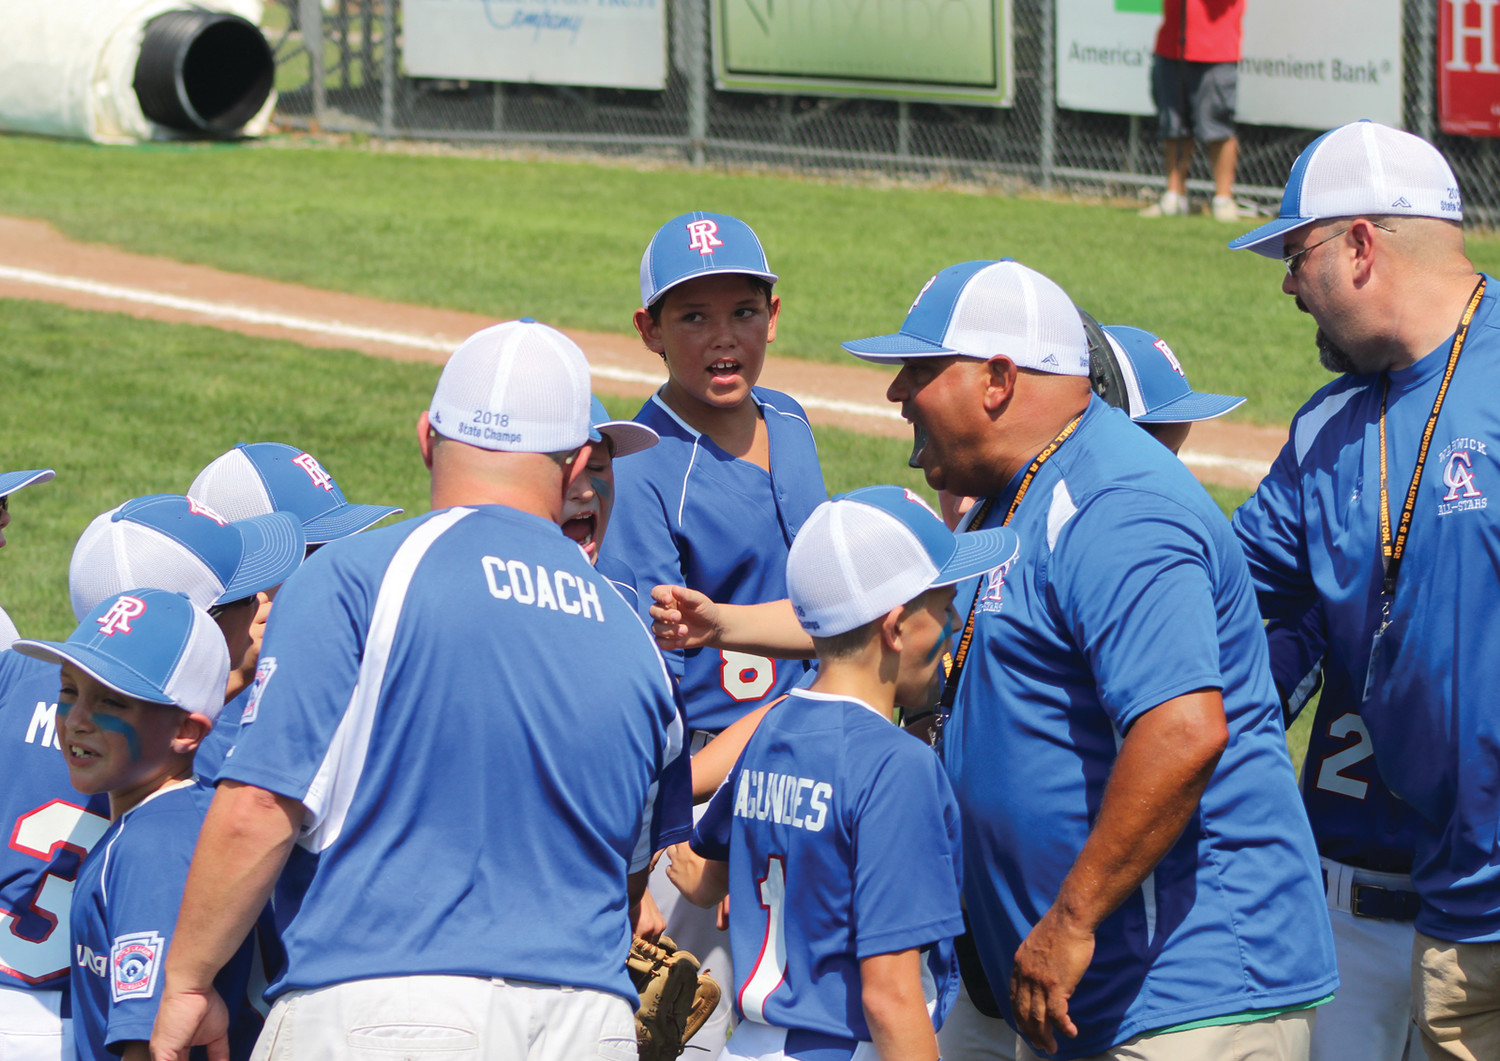 TALKING STRATEGY: The Warwick Continental Little League team talks strategy in between innings against South Portland, Maine in the 2018 Little League East Regional tournament in Cranston on Monday afternoon.